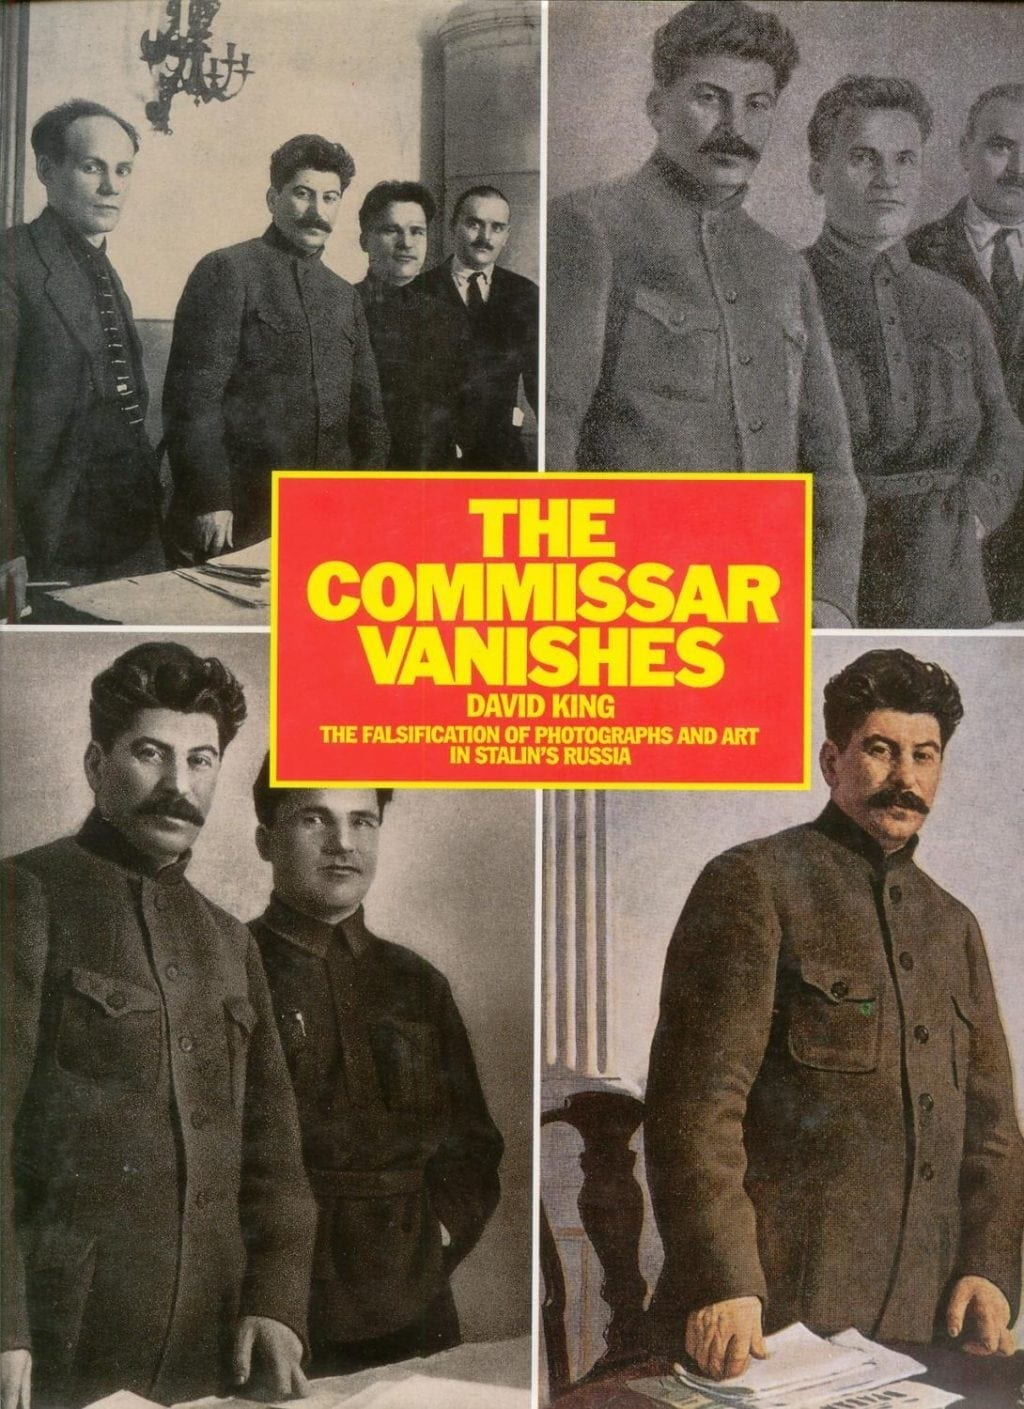 The world's first Photoshop expert: Stalin's history of the Soviet Union